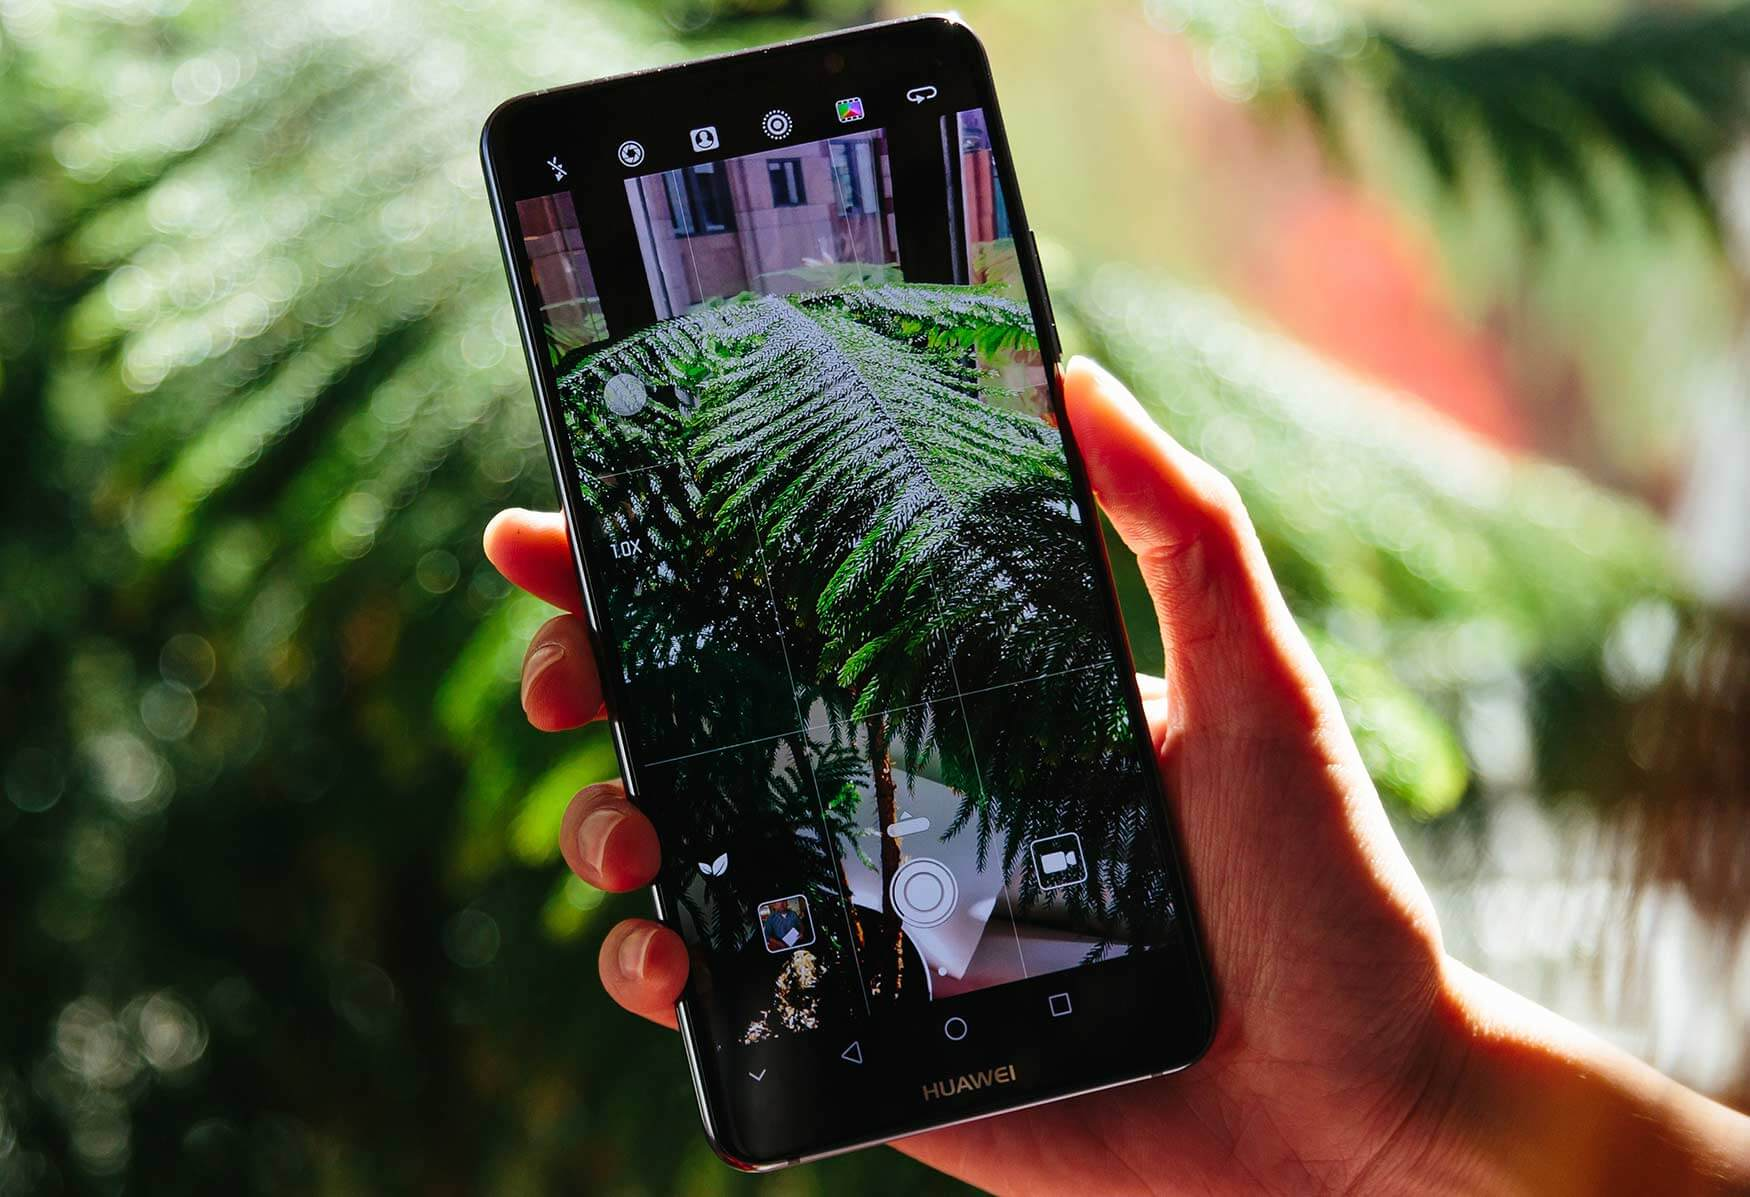 Huawei phone demonstrating Scene Recognition feature